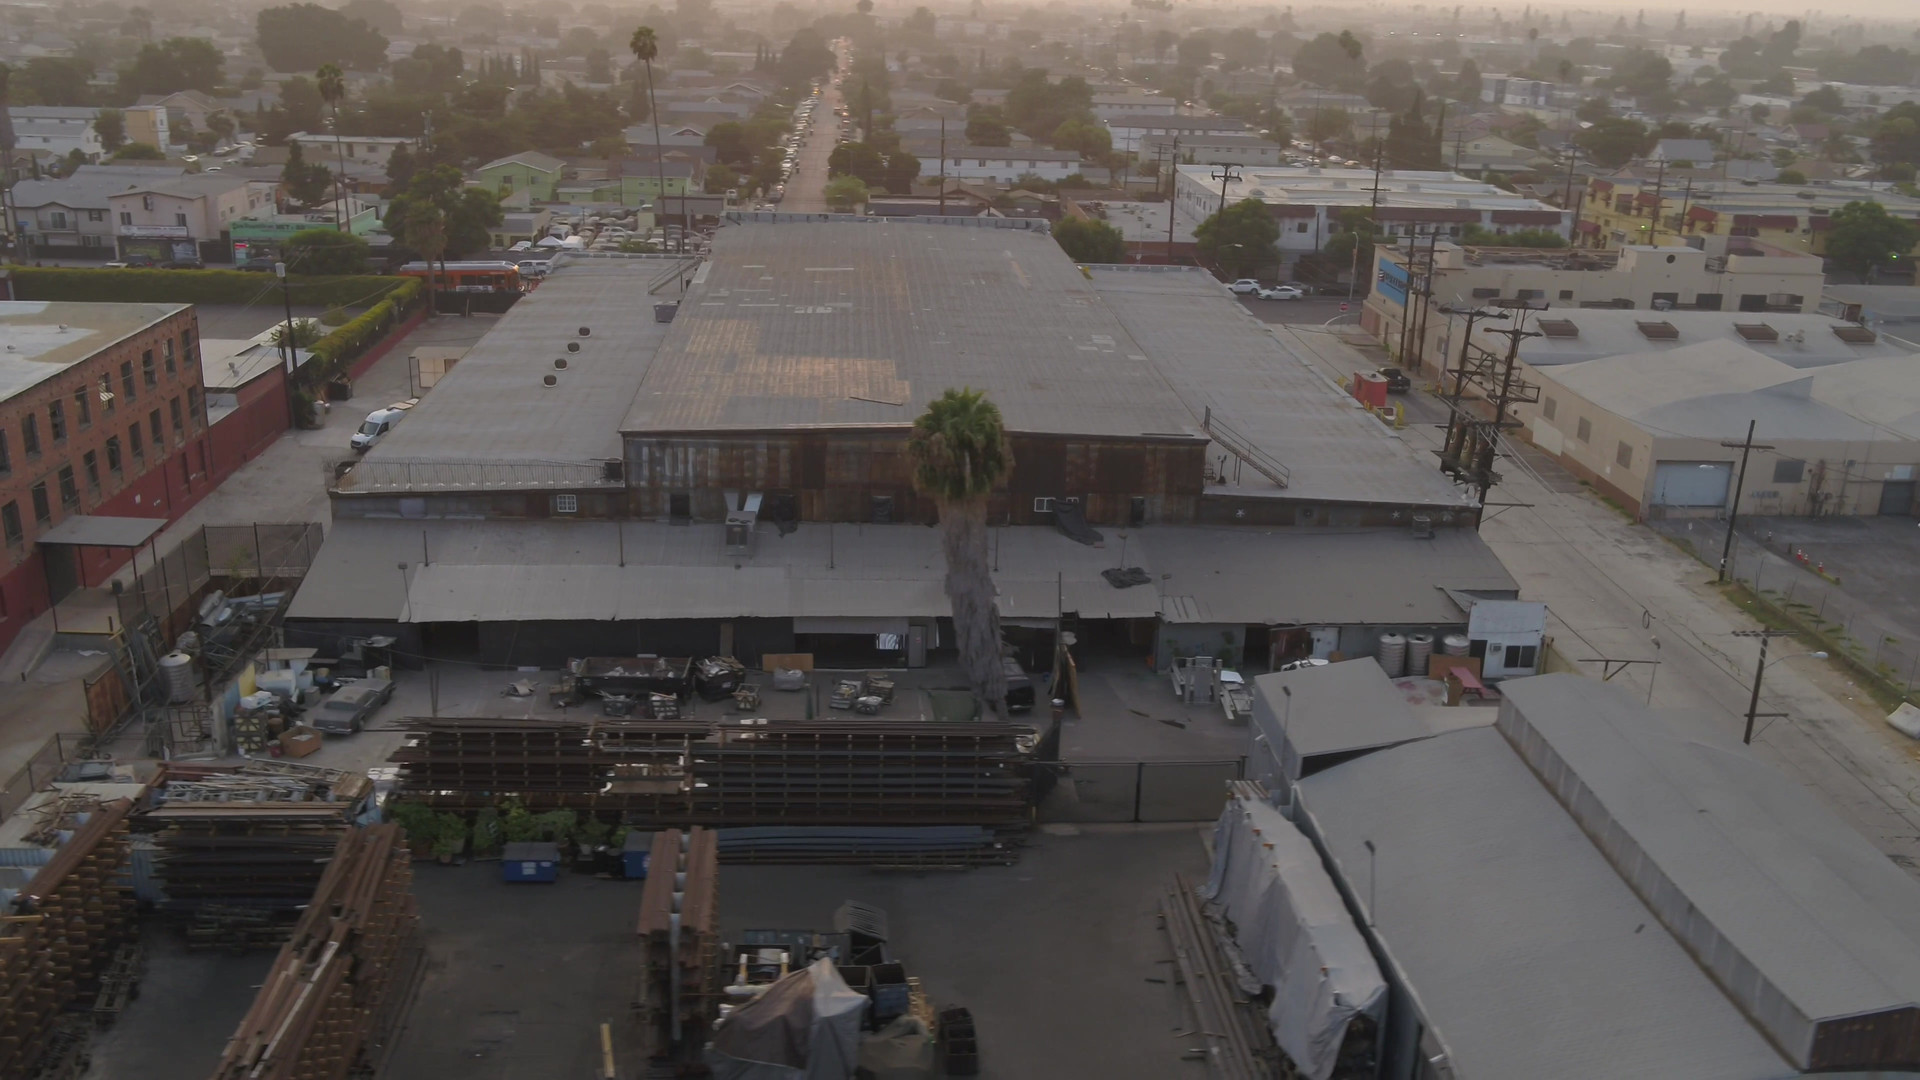 Studios 60 Rooftop Drone Footage.mp4